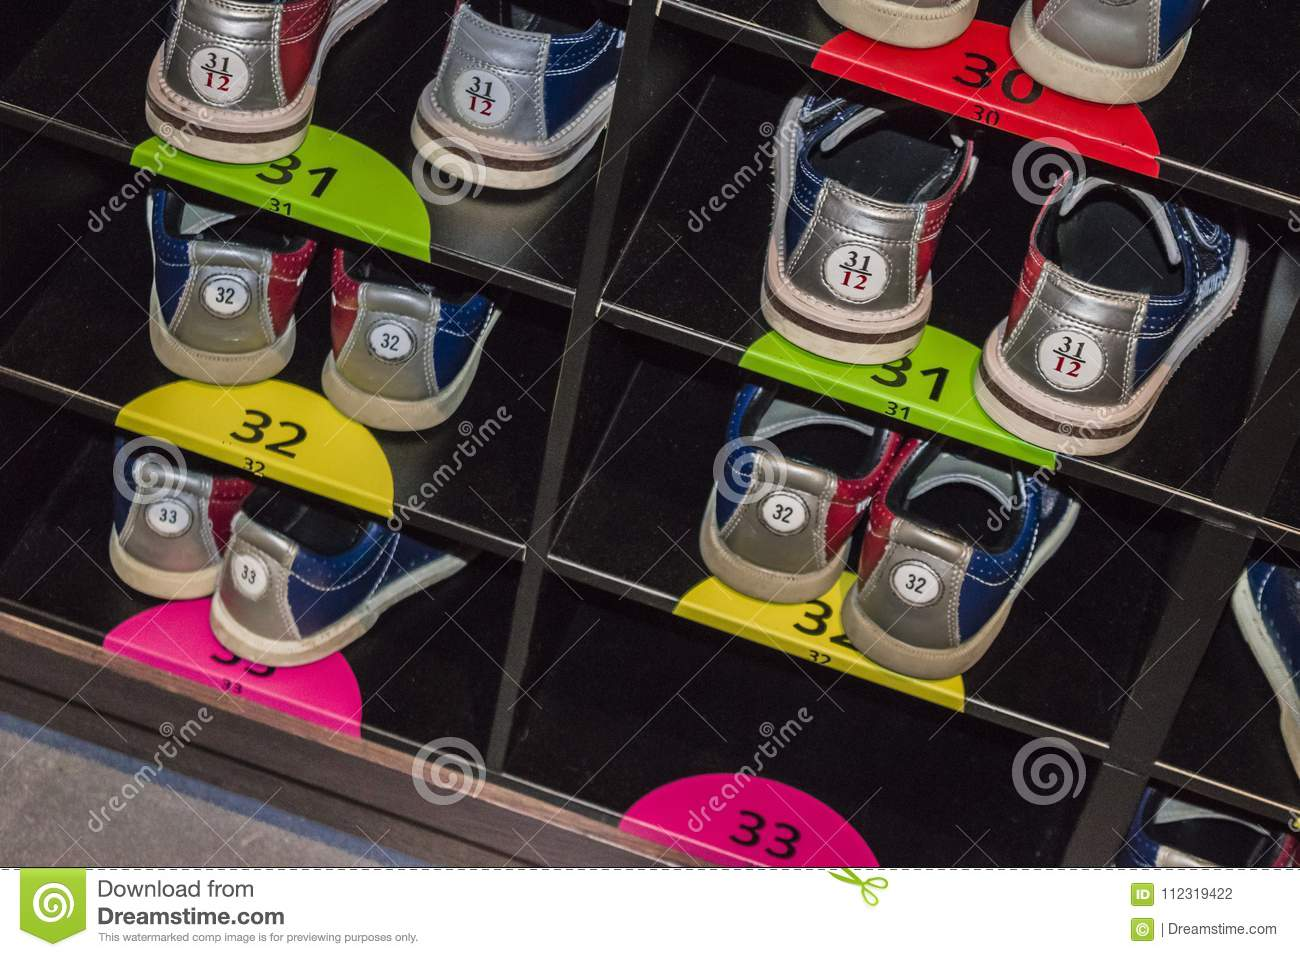 Bowling shoes in a shoe rack